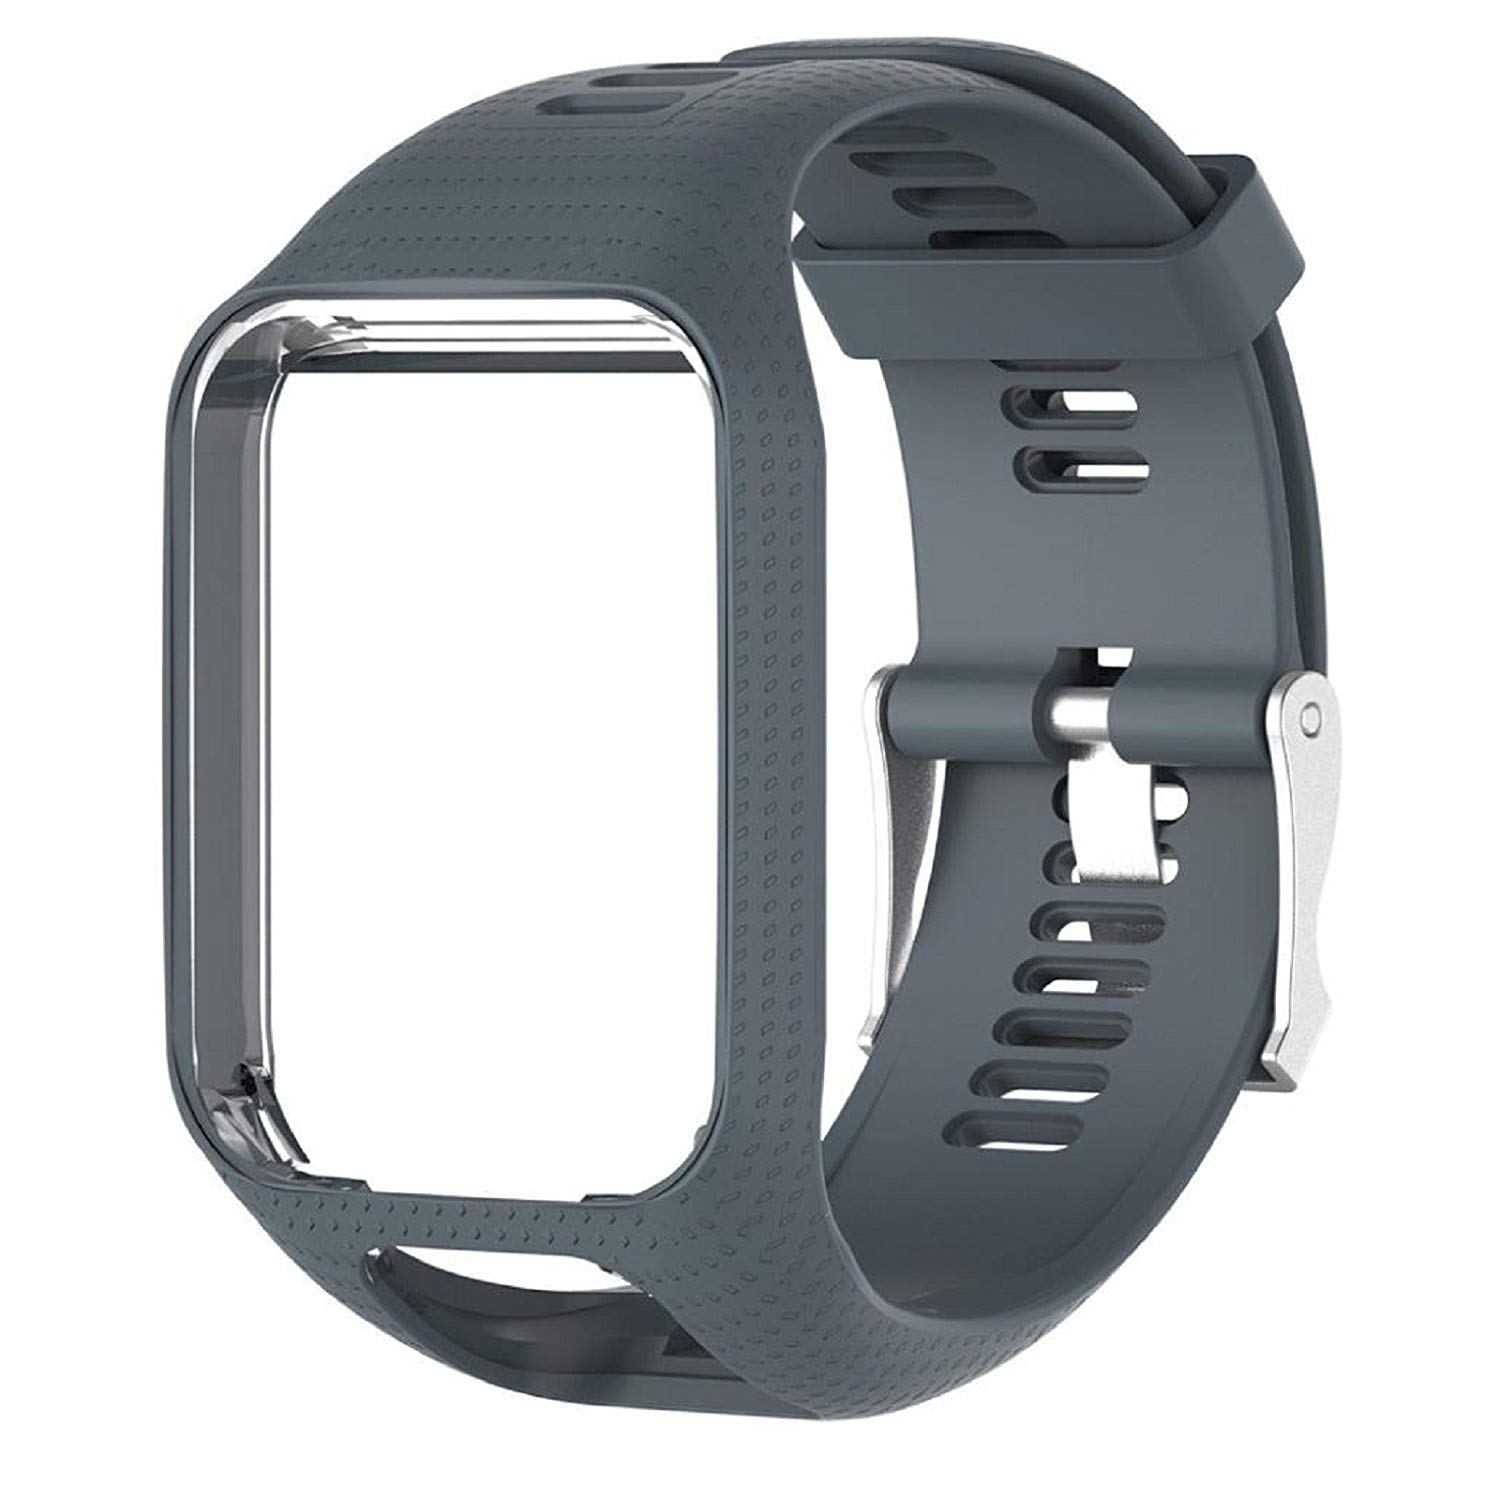 Owill Replacement Silicone Band Strap Frame For Tom Tom Spark/Runner GPS Watch, Band Length: 23cm, Great for Hiking Climbing (Gray)